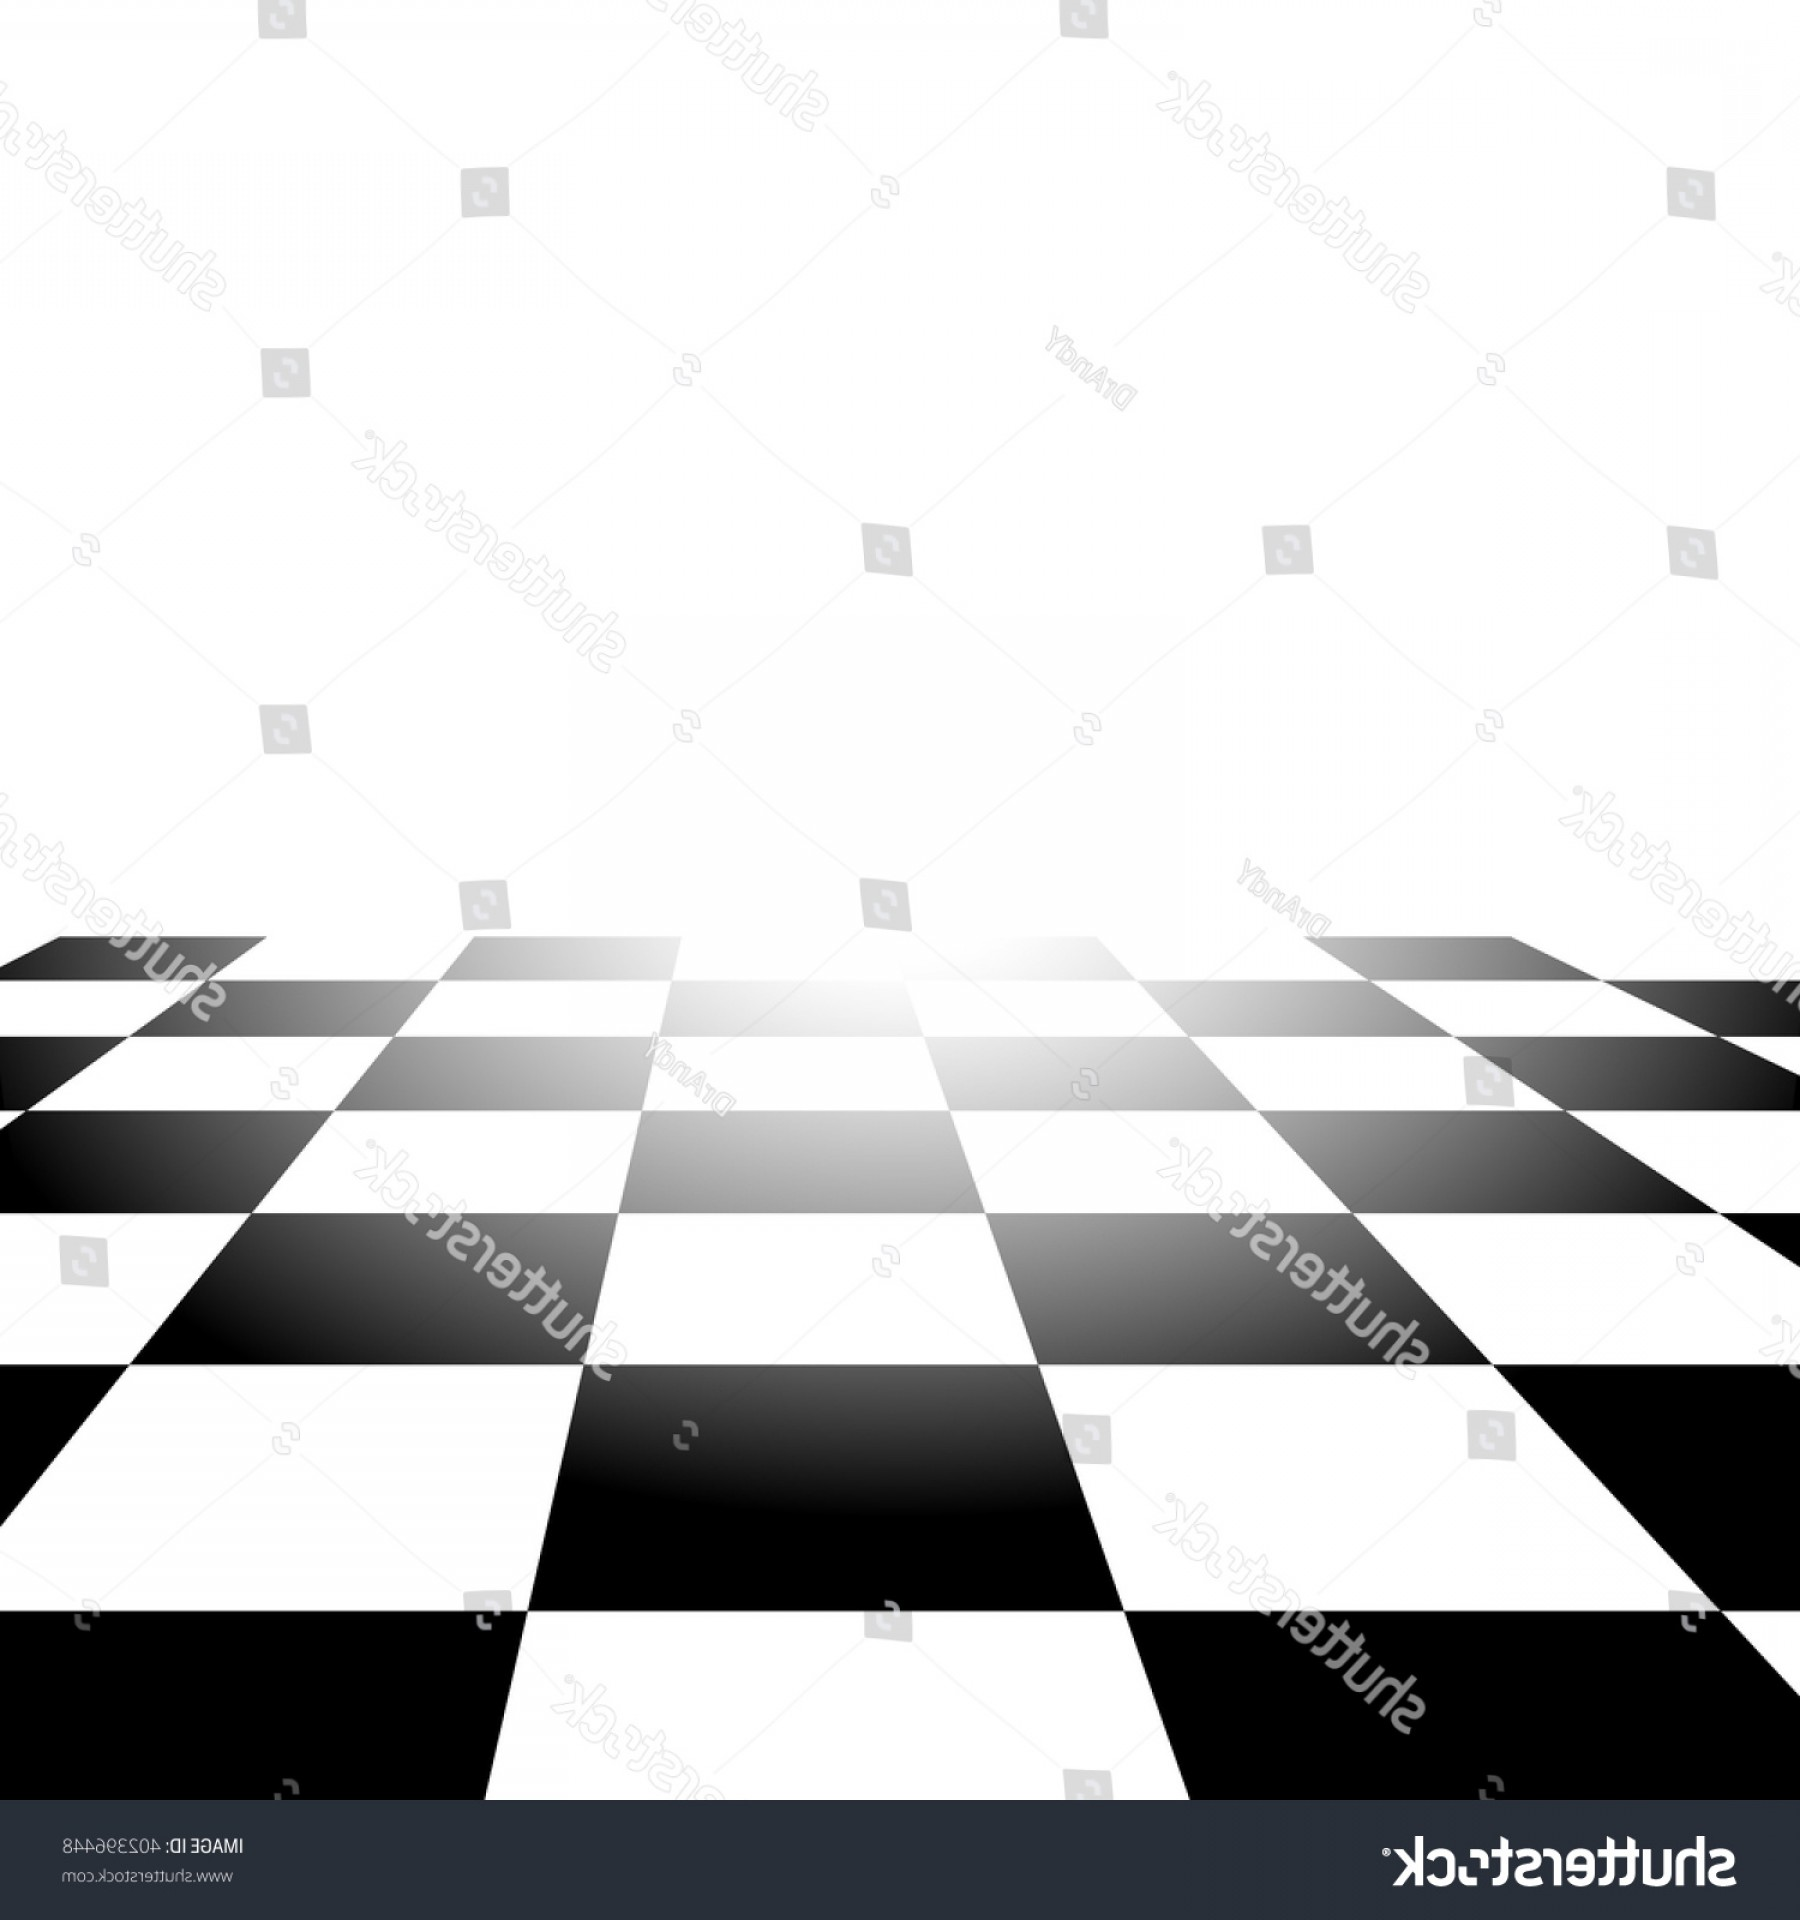 Chess Vector Background: Realistic Chess Board Abstract Vector Background